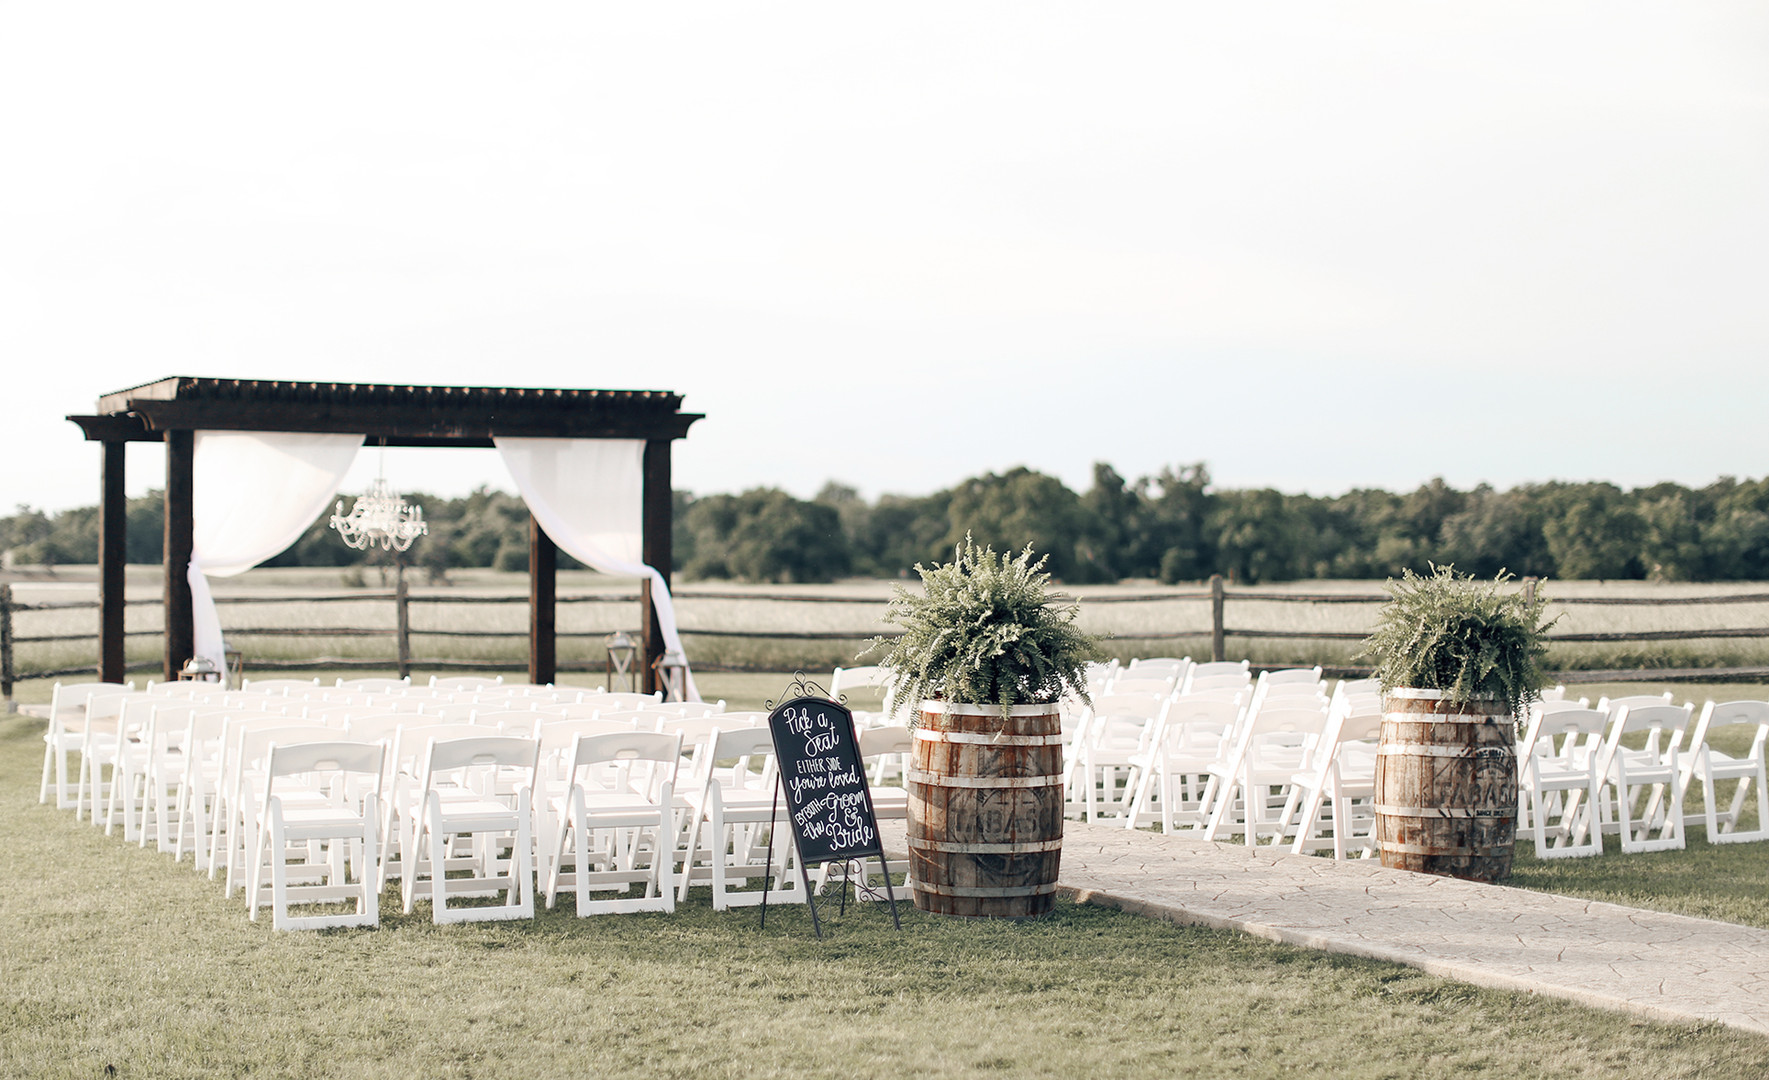 Ceremony space amongst acres